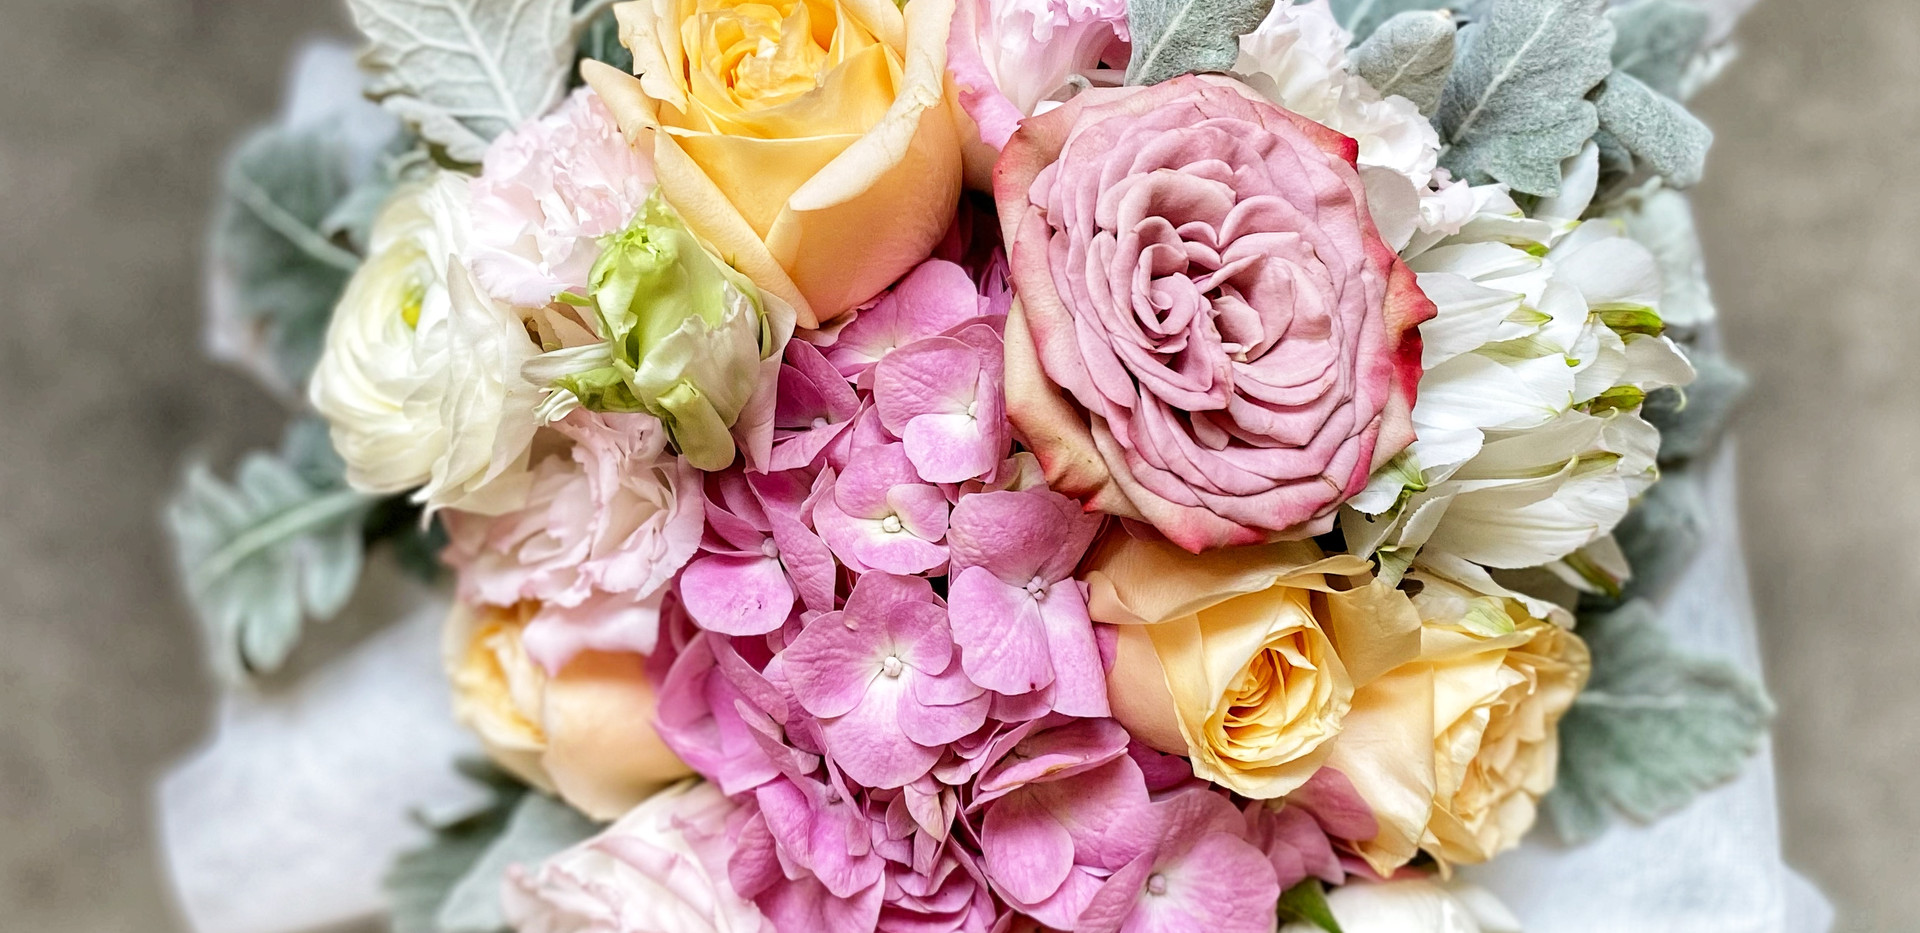 Pink Hydrangea bouqeut accented with a Cuppucino rose